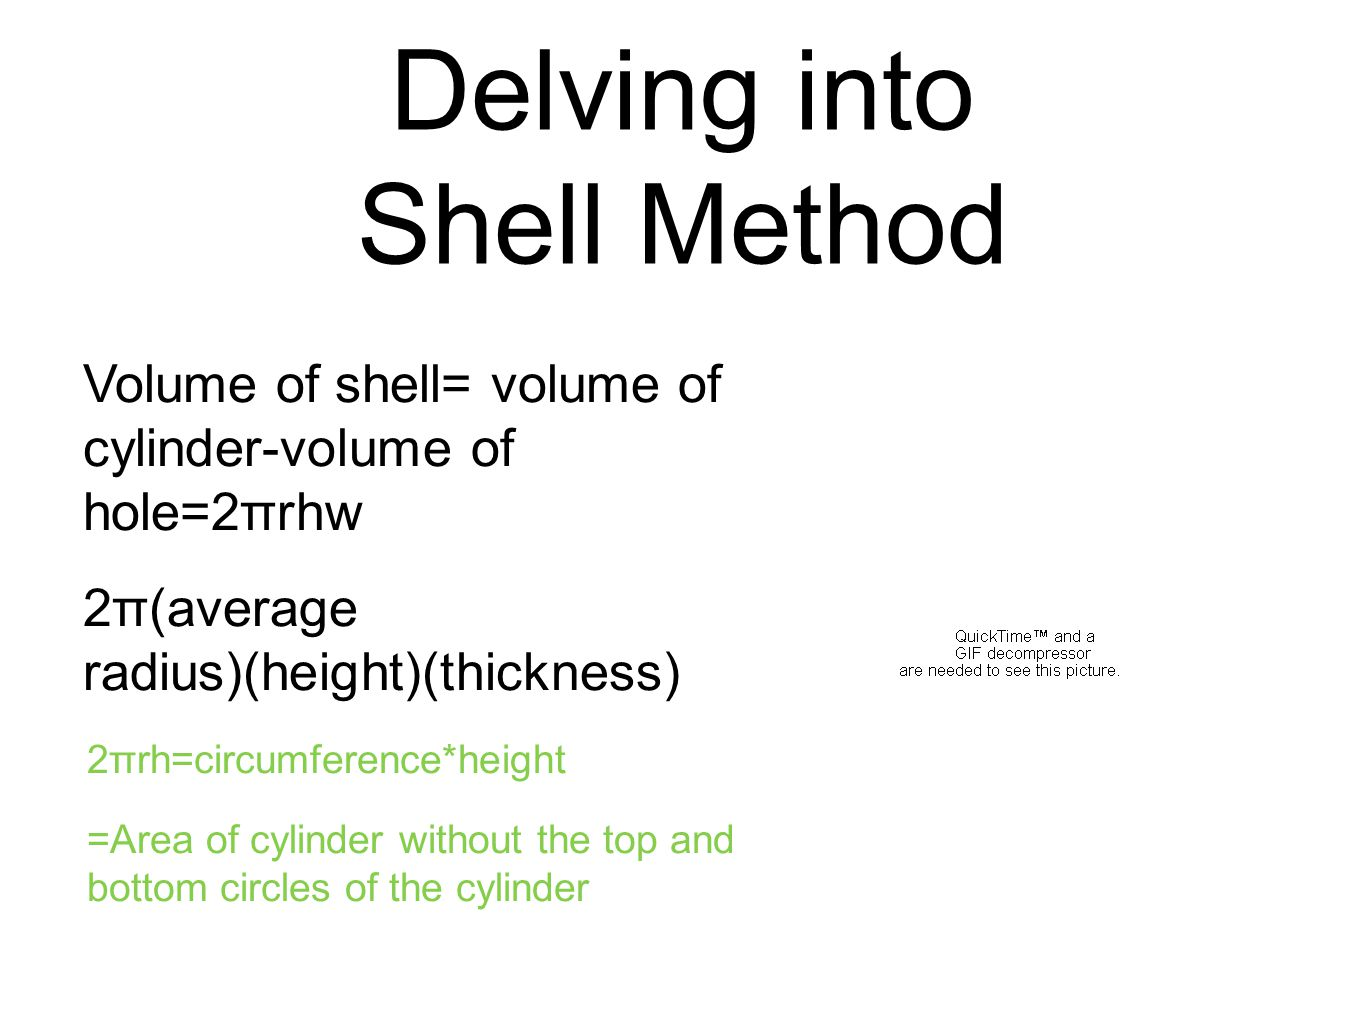 Delving into Shell Method Volume of shell= volume of cylinder-volume of hole=2πrhw 2π(average radius)(height)(thickness) 2πrh=circumference*height =Area of cylinder without the top and bottom circles of the cylinder